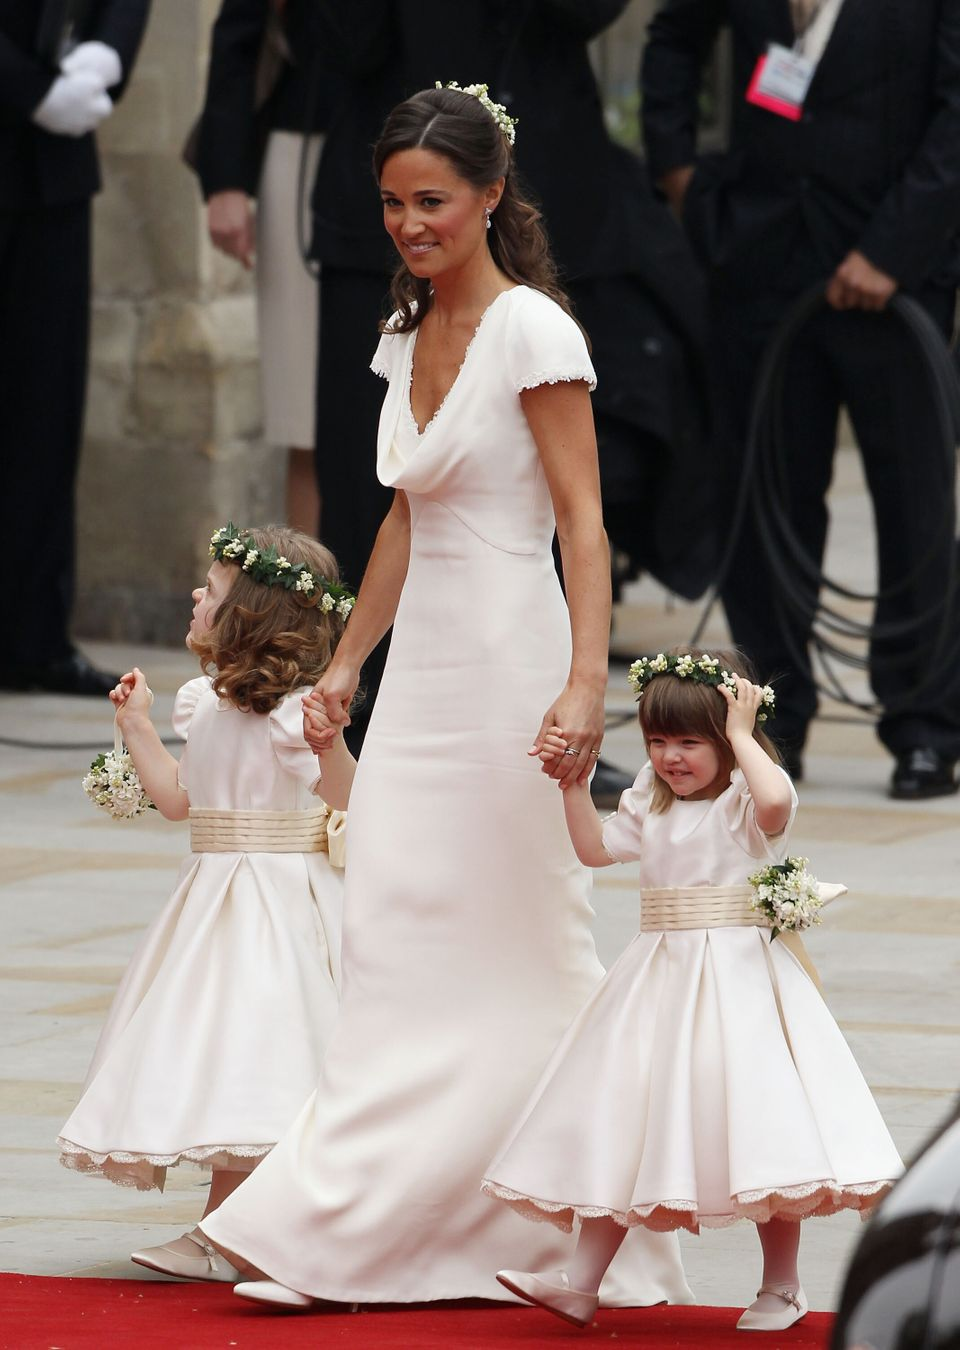 Pippa Middleton's Style Evolution Through The Years 15